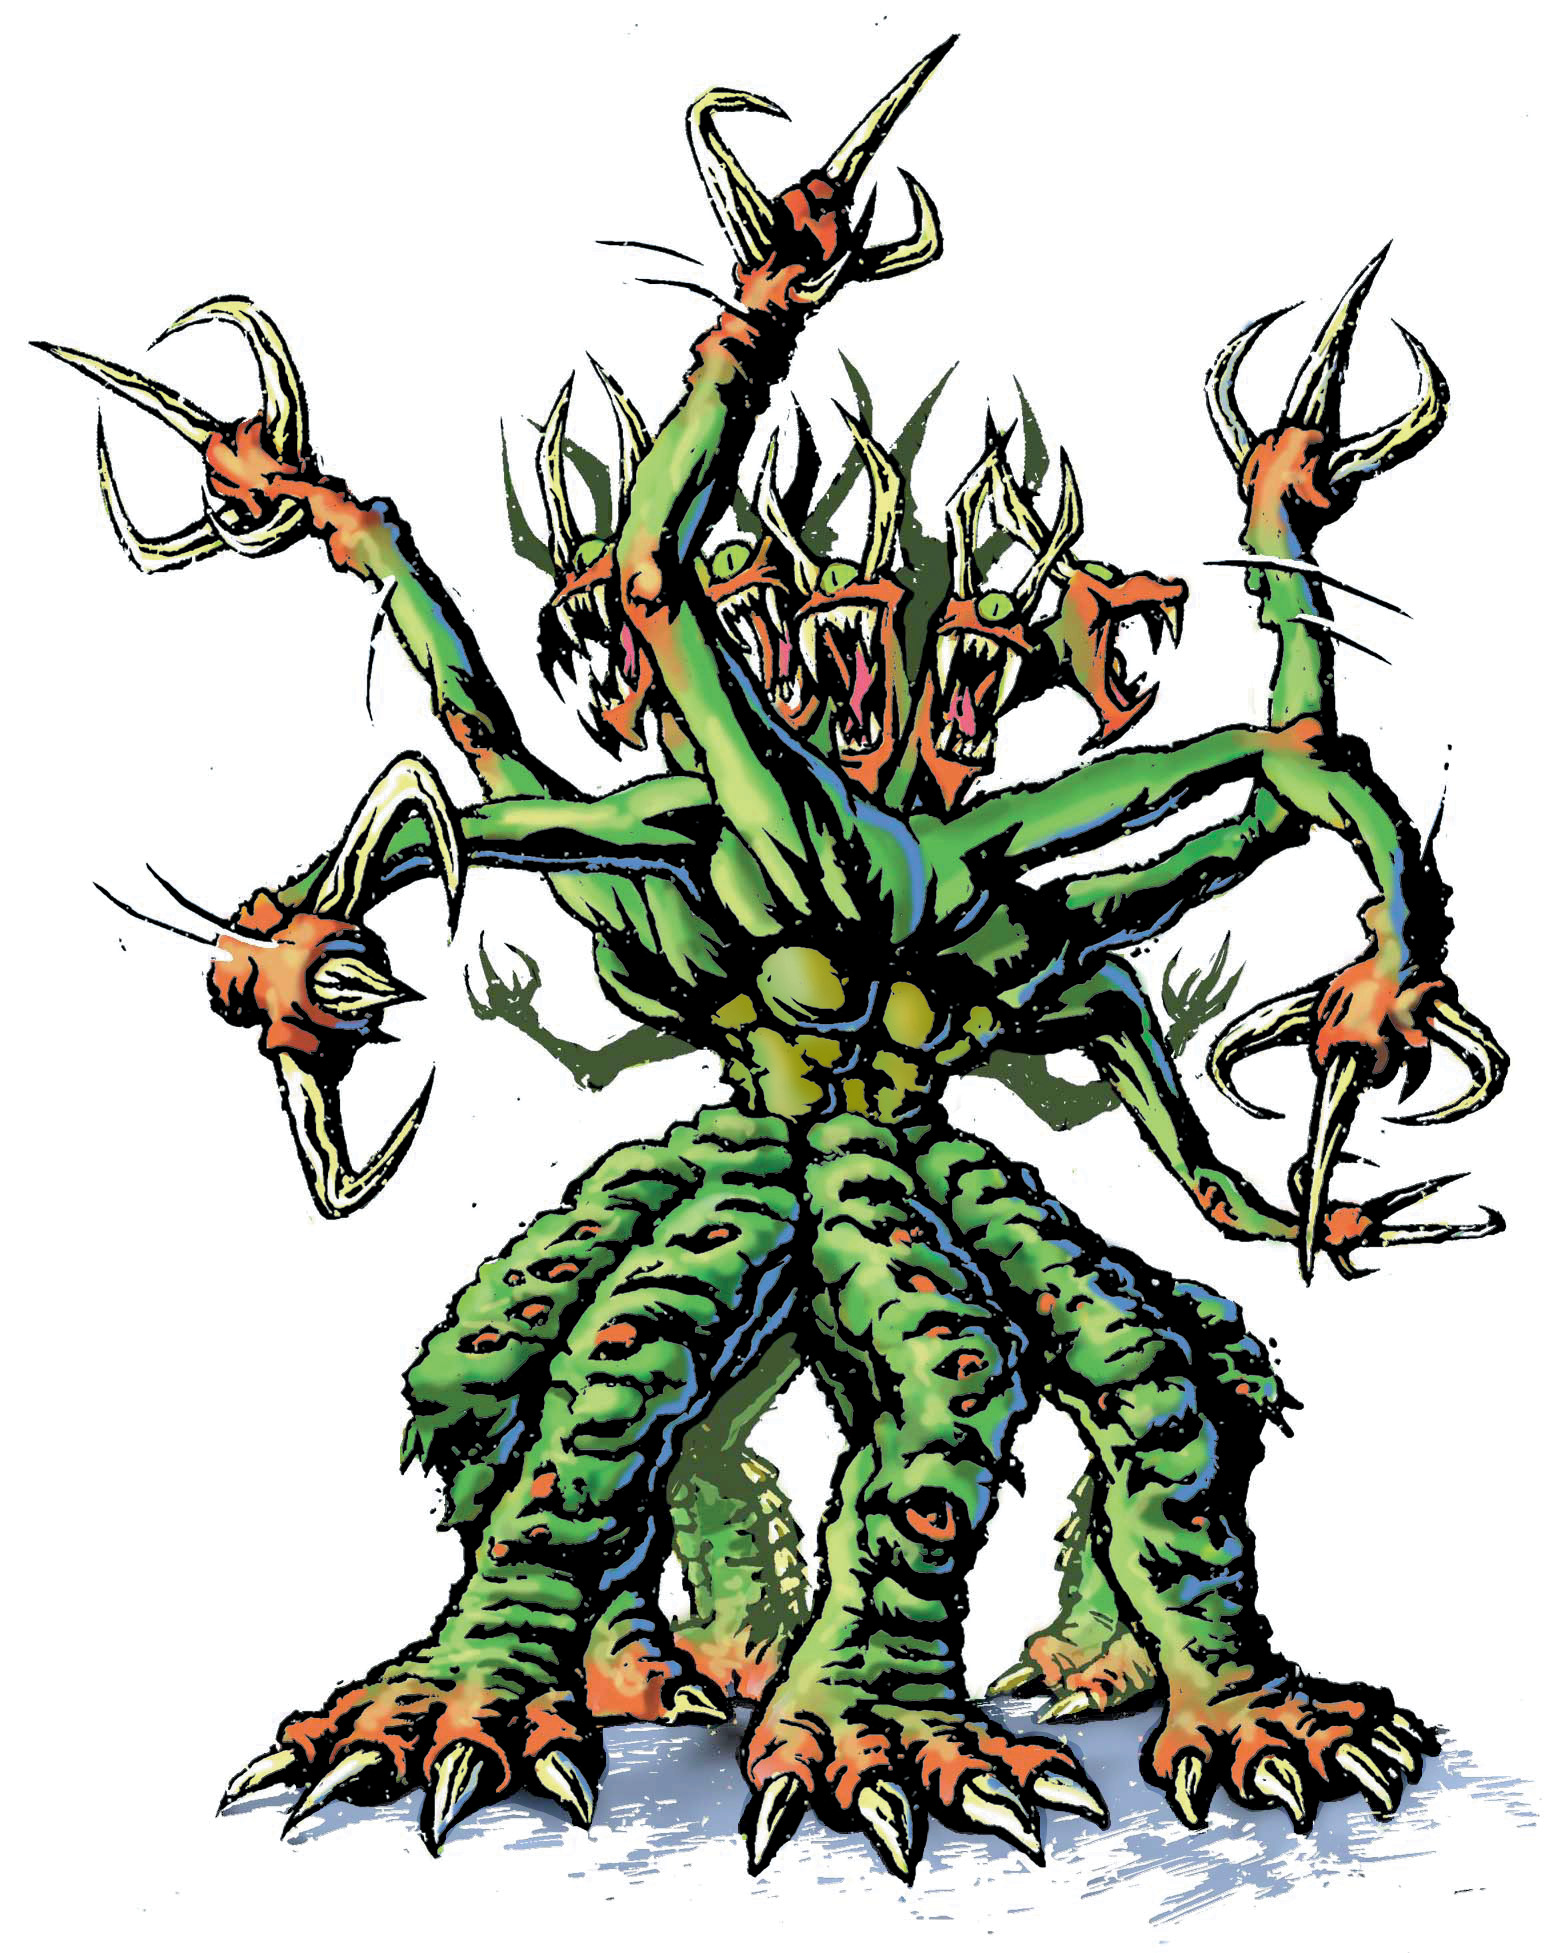 Unnamed Creature with Eight Heads and Eight Legs